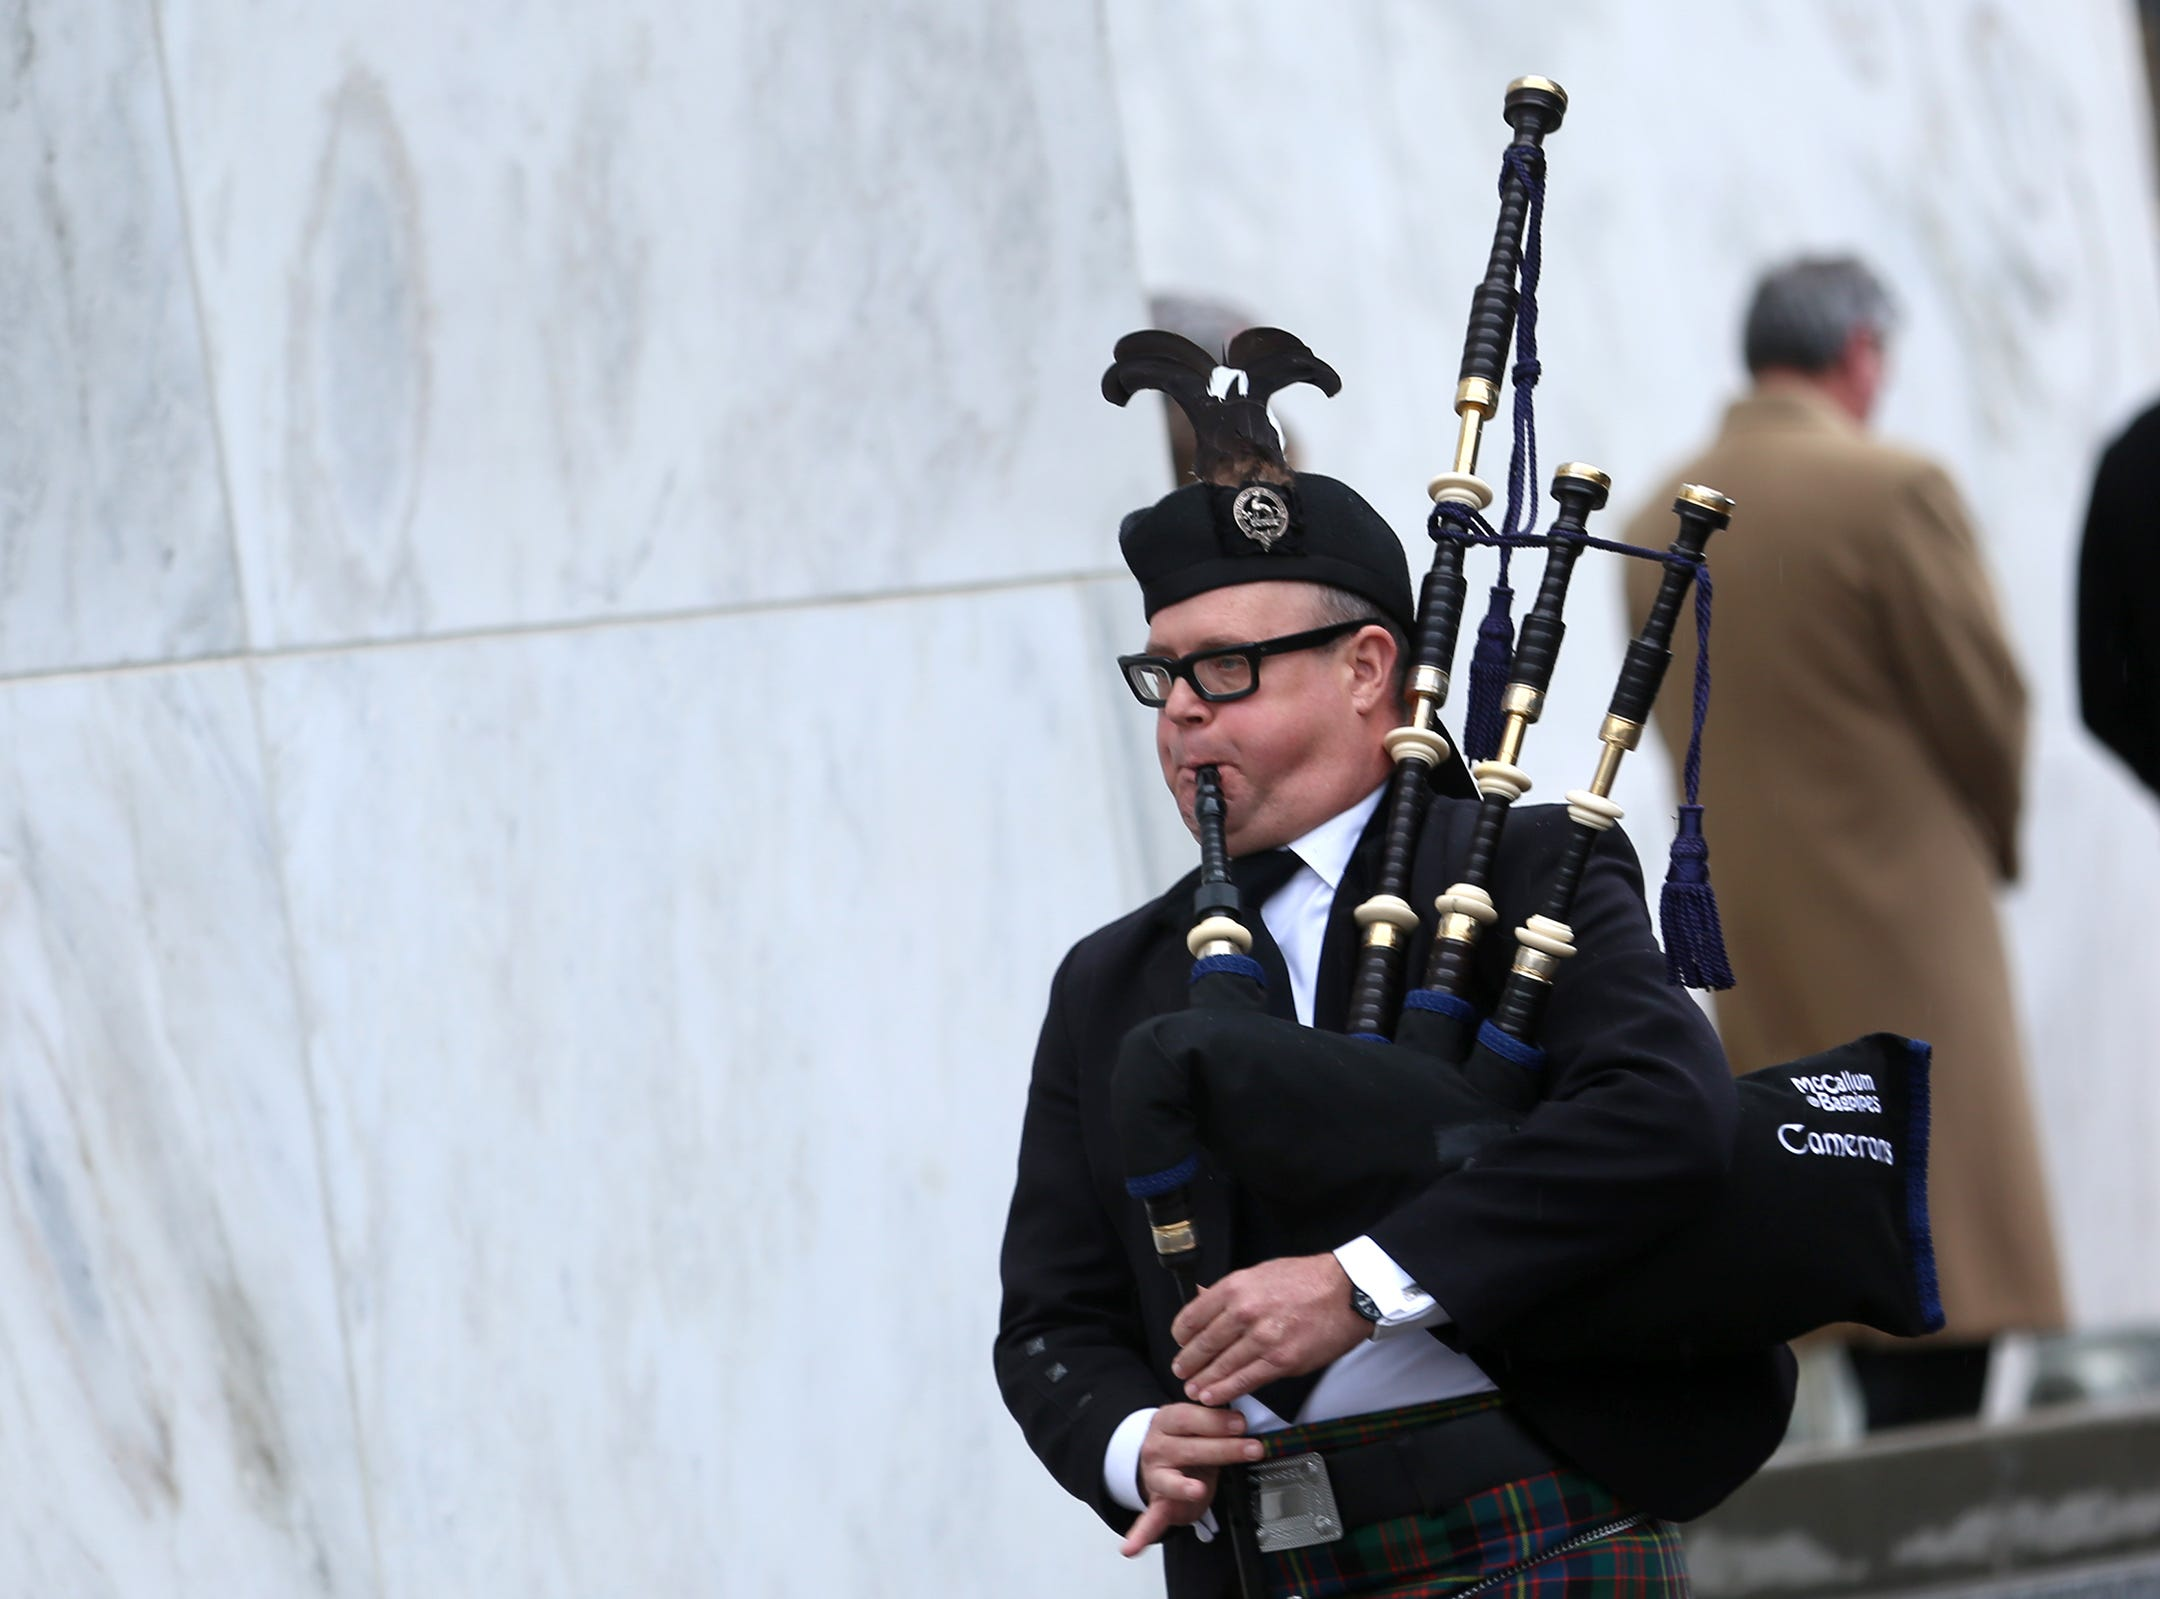 John Goff, on bag pipes, peforms after the state funeral for Secretary of State Dennis Richardson at the Oregon State Capitol in Salem on Wednesday, March 6, 2019.